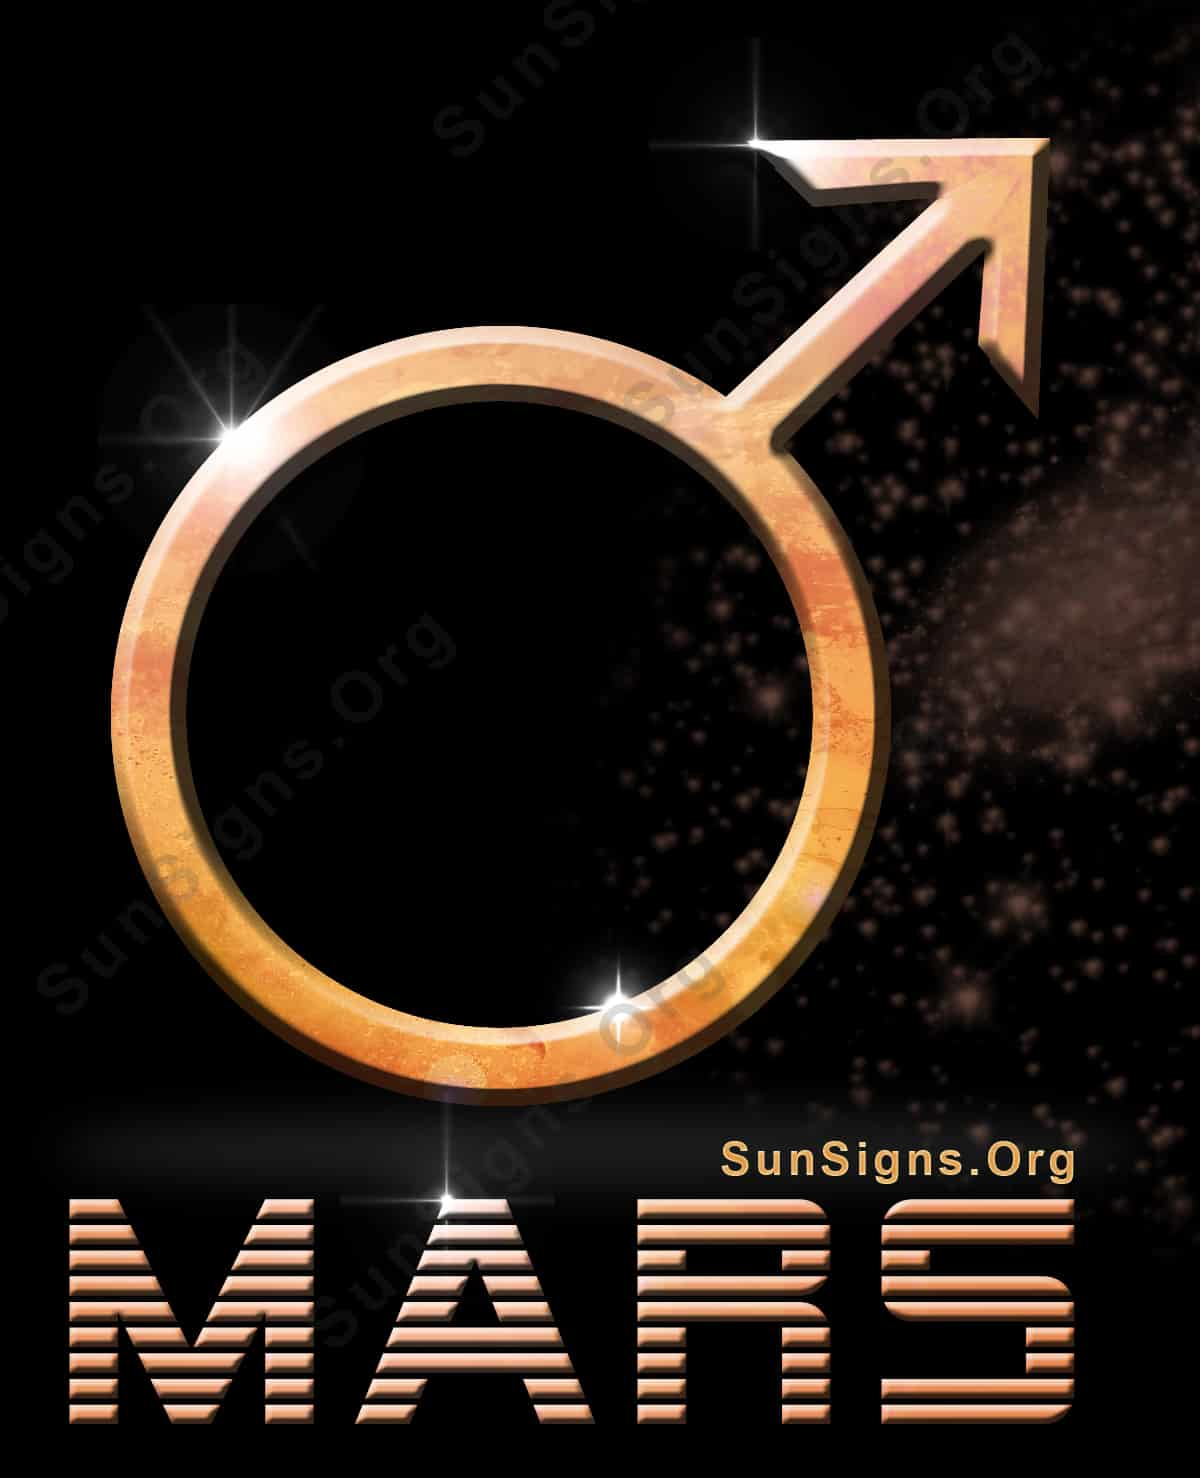 Mars will control energy and passion